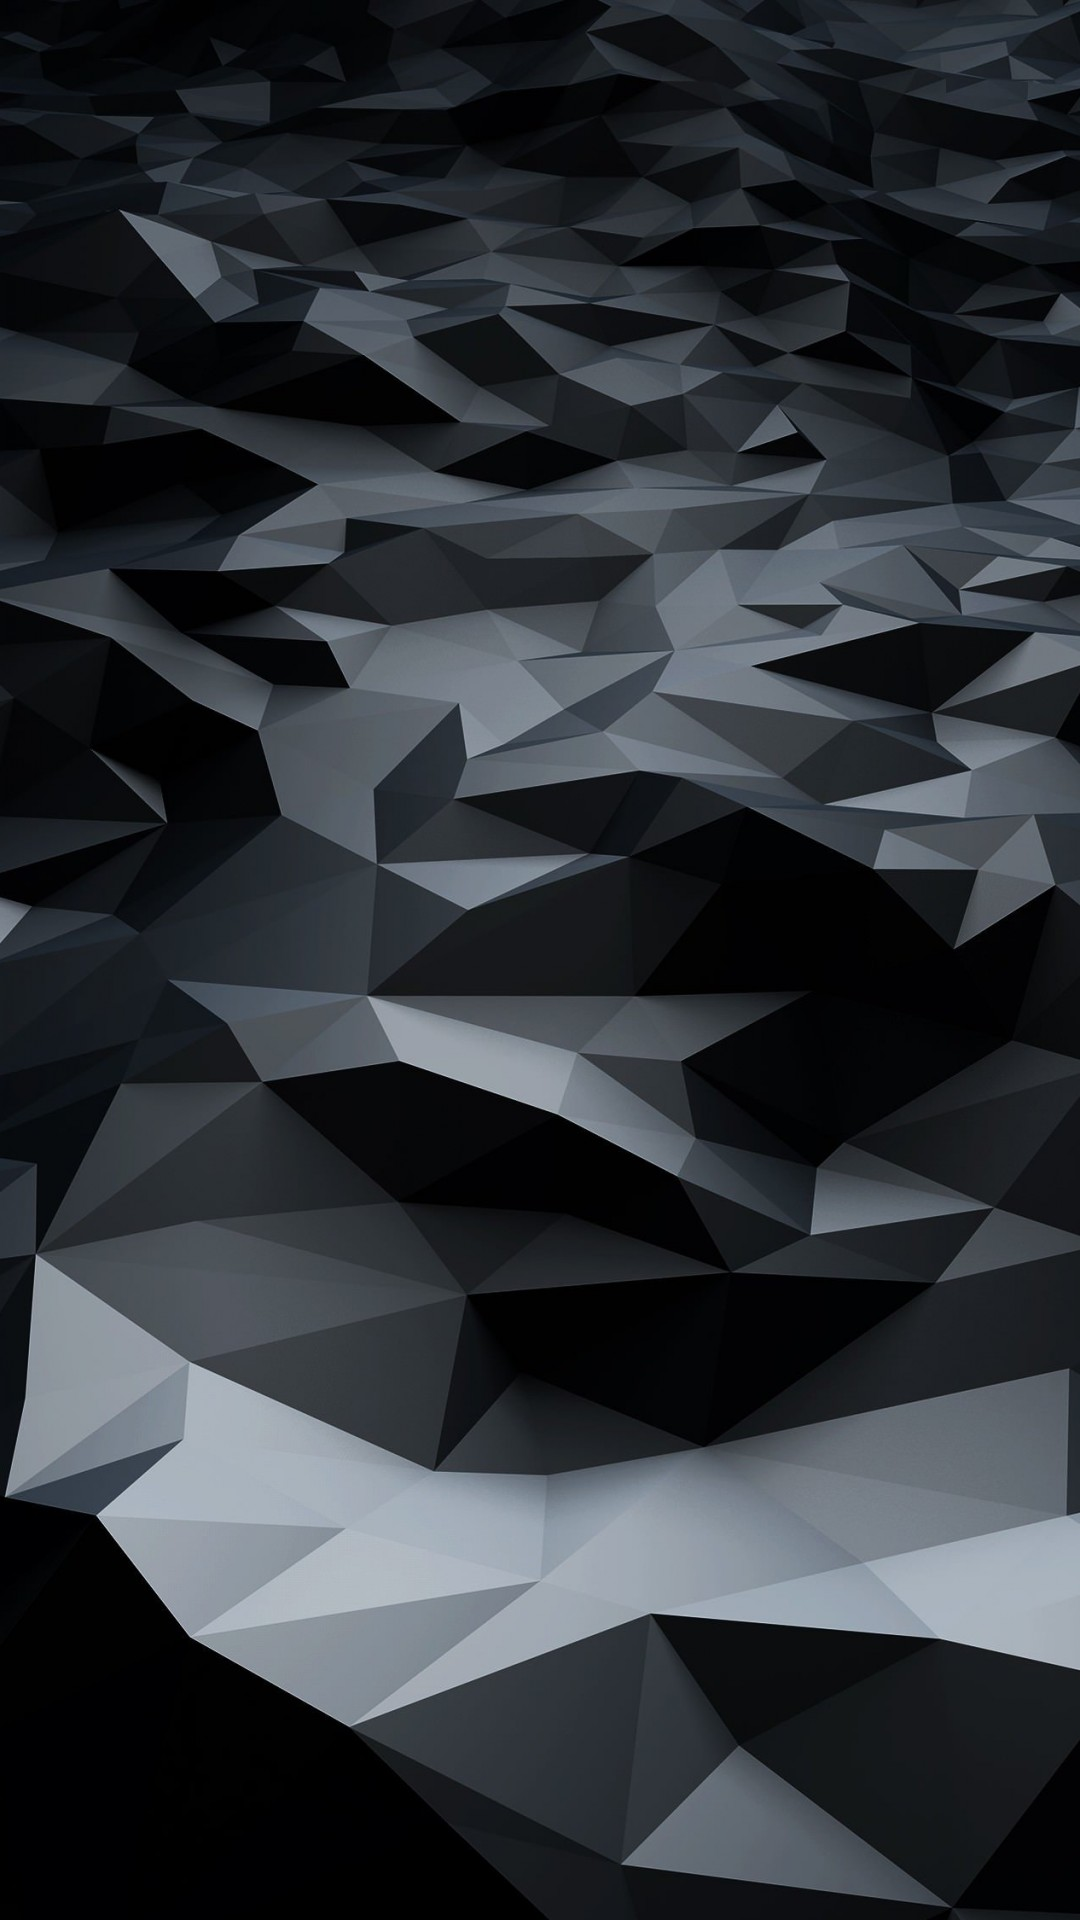 Abstract Black Low Poly Wallpaper for SONY Xperia Z3